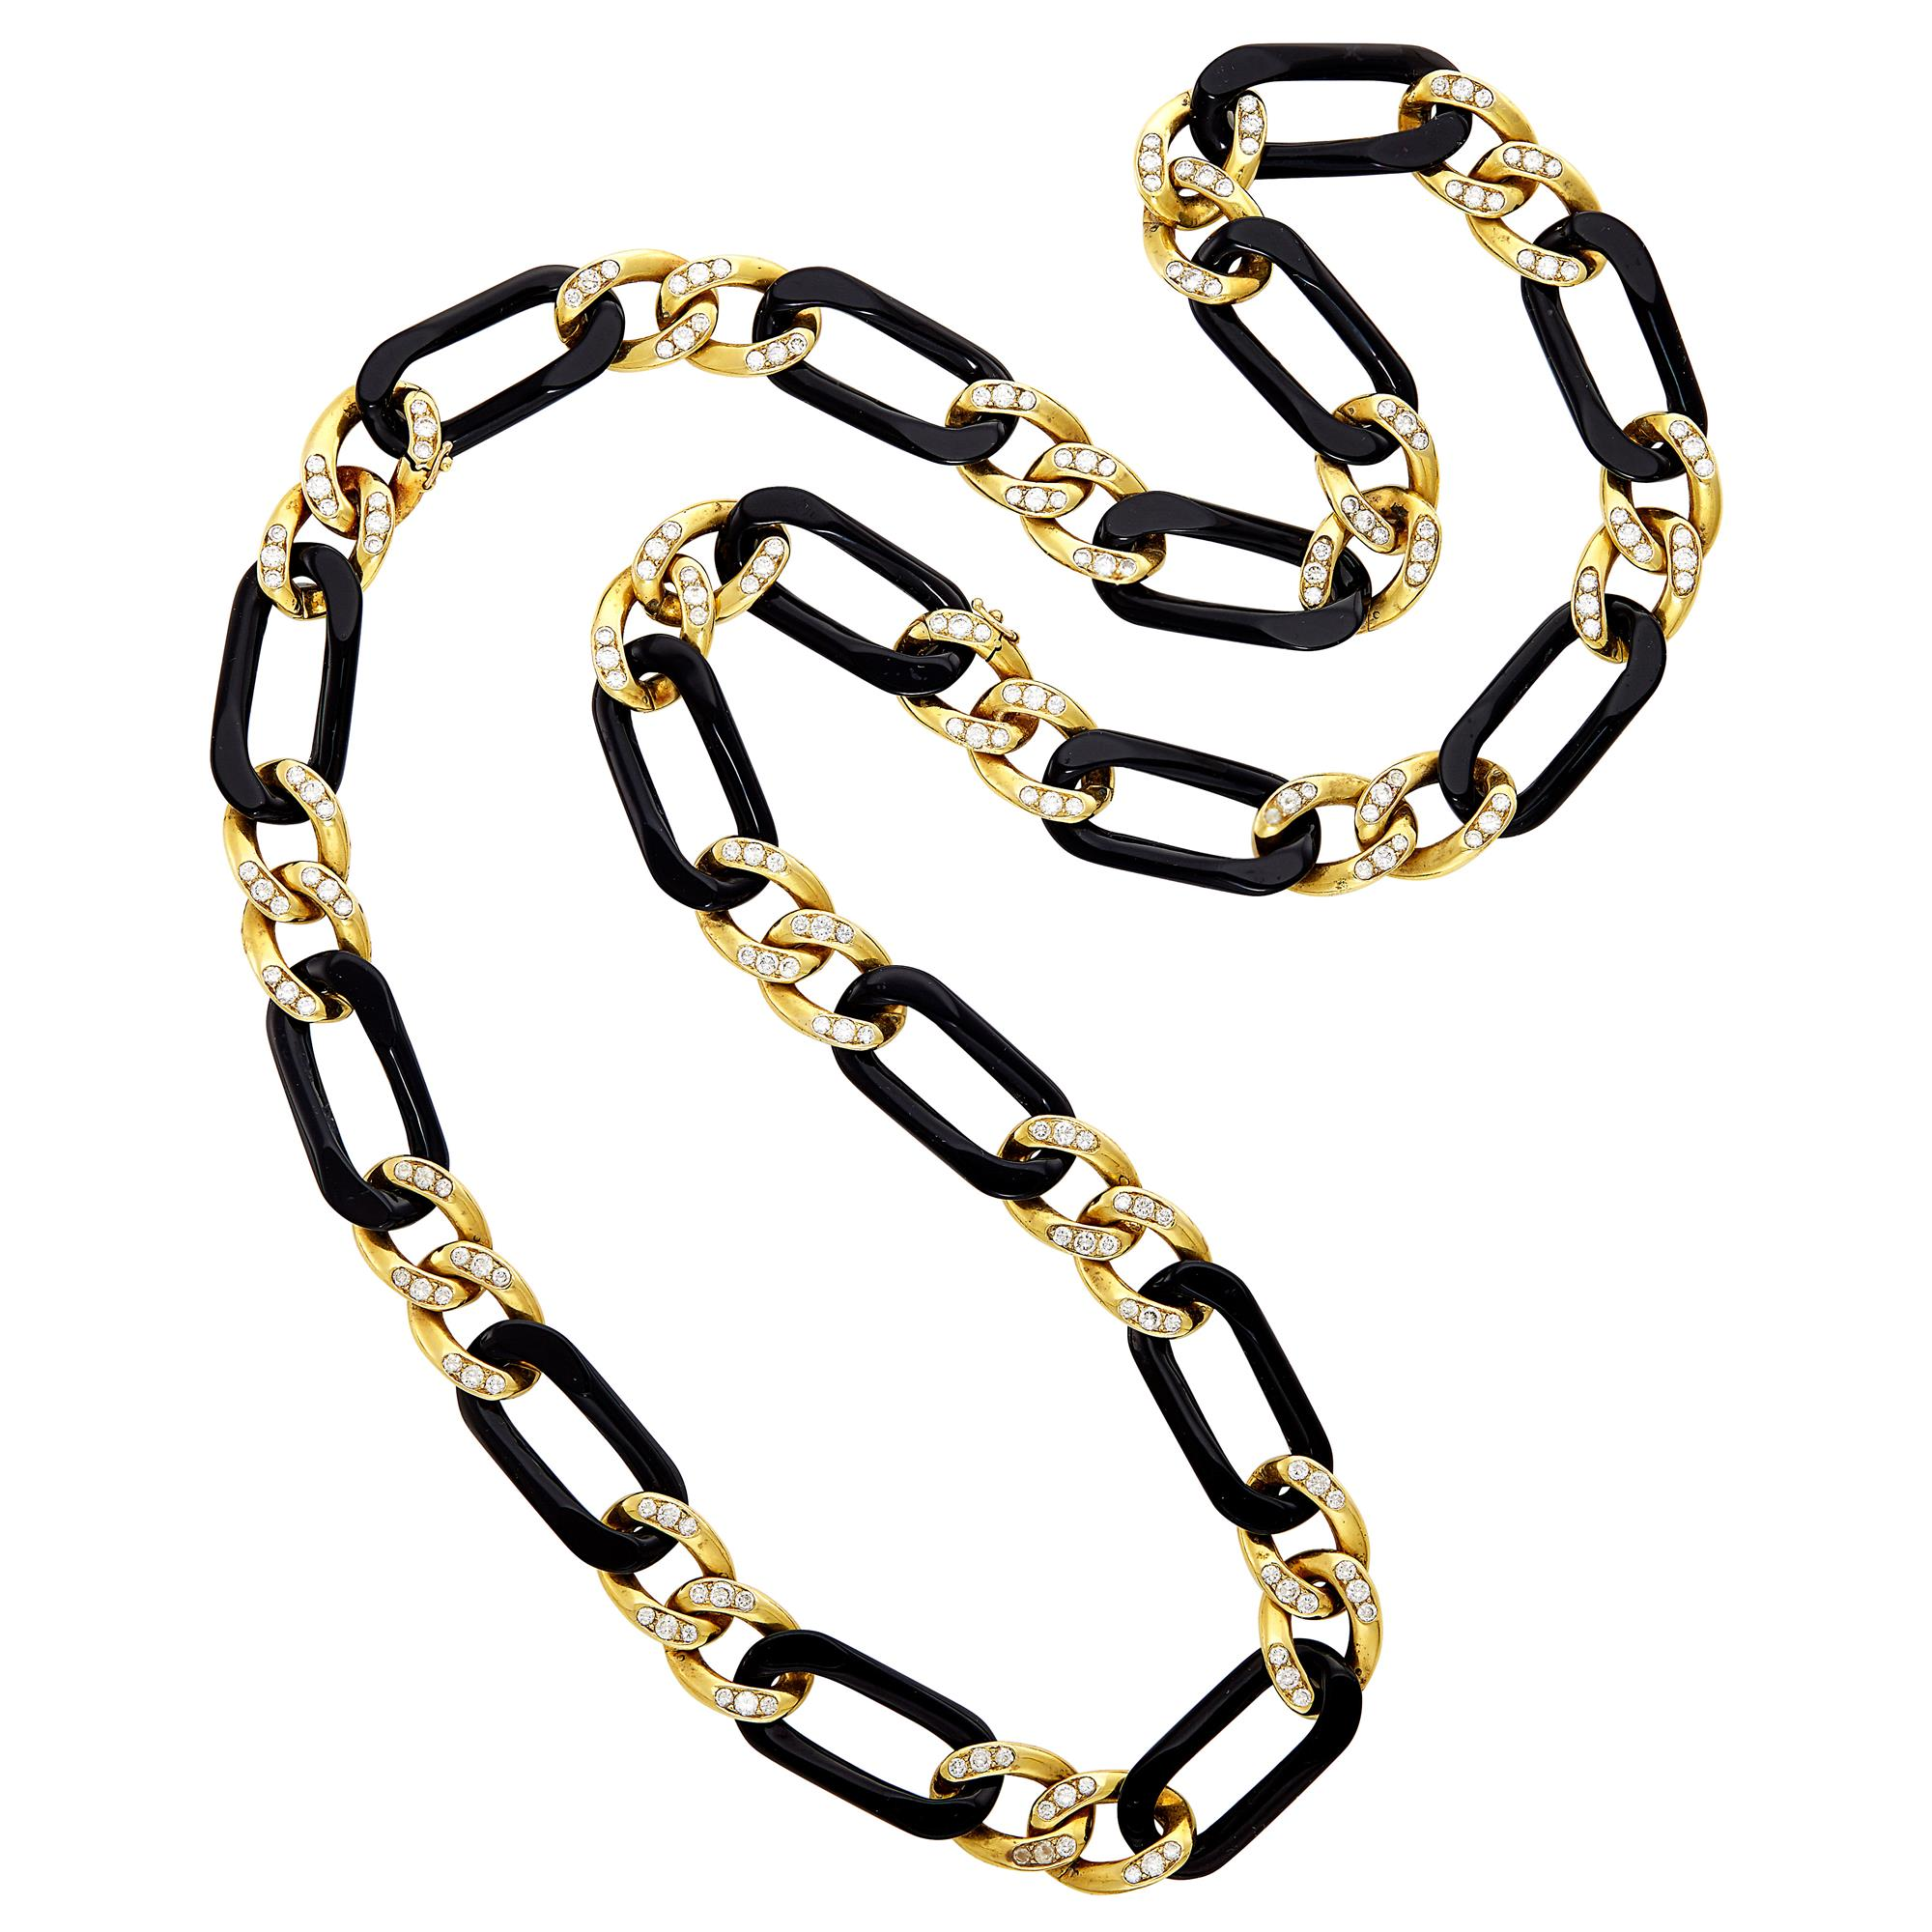 Lot image - Long Black Onyx, Gold and Diamond Curb Link Necklace, Van Cleef & Arpels, France